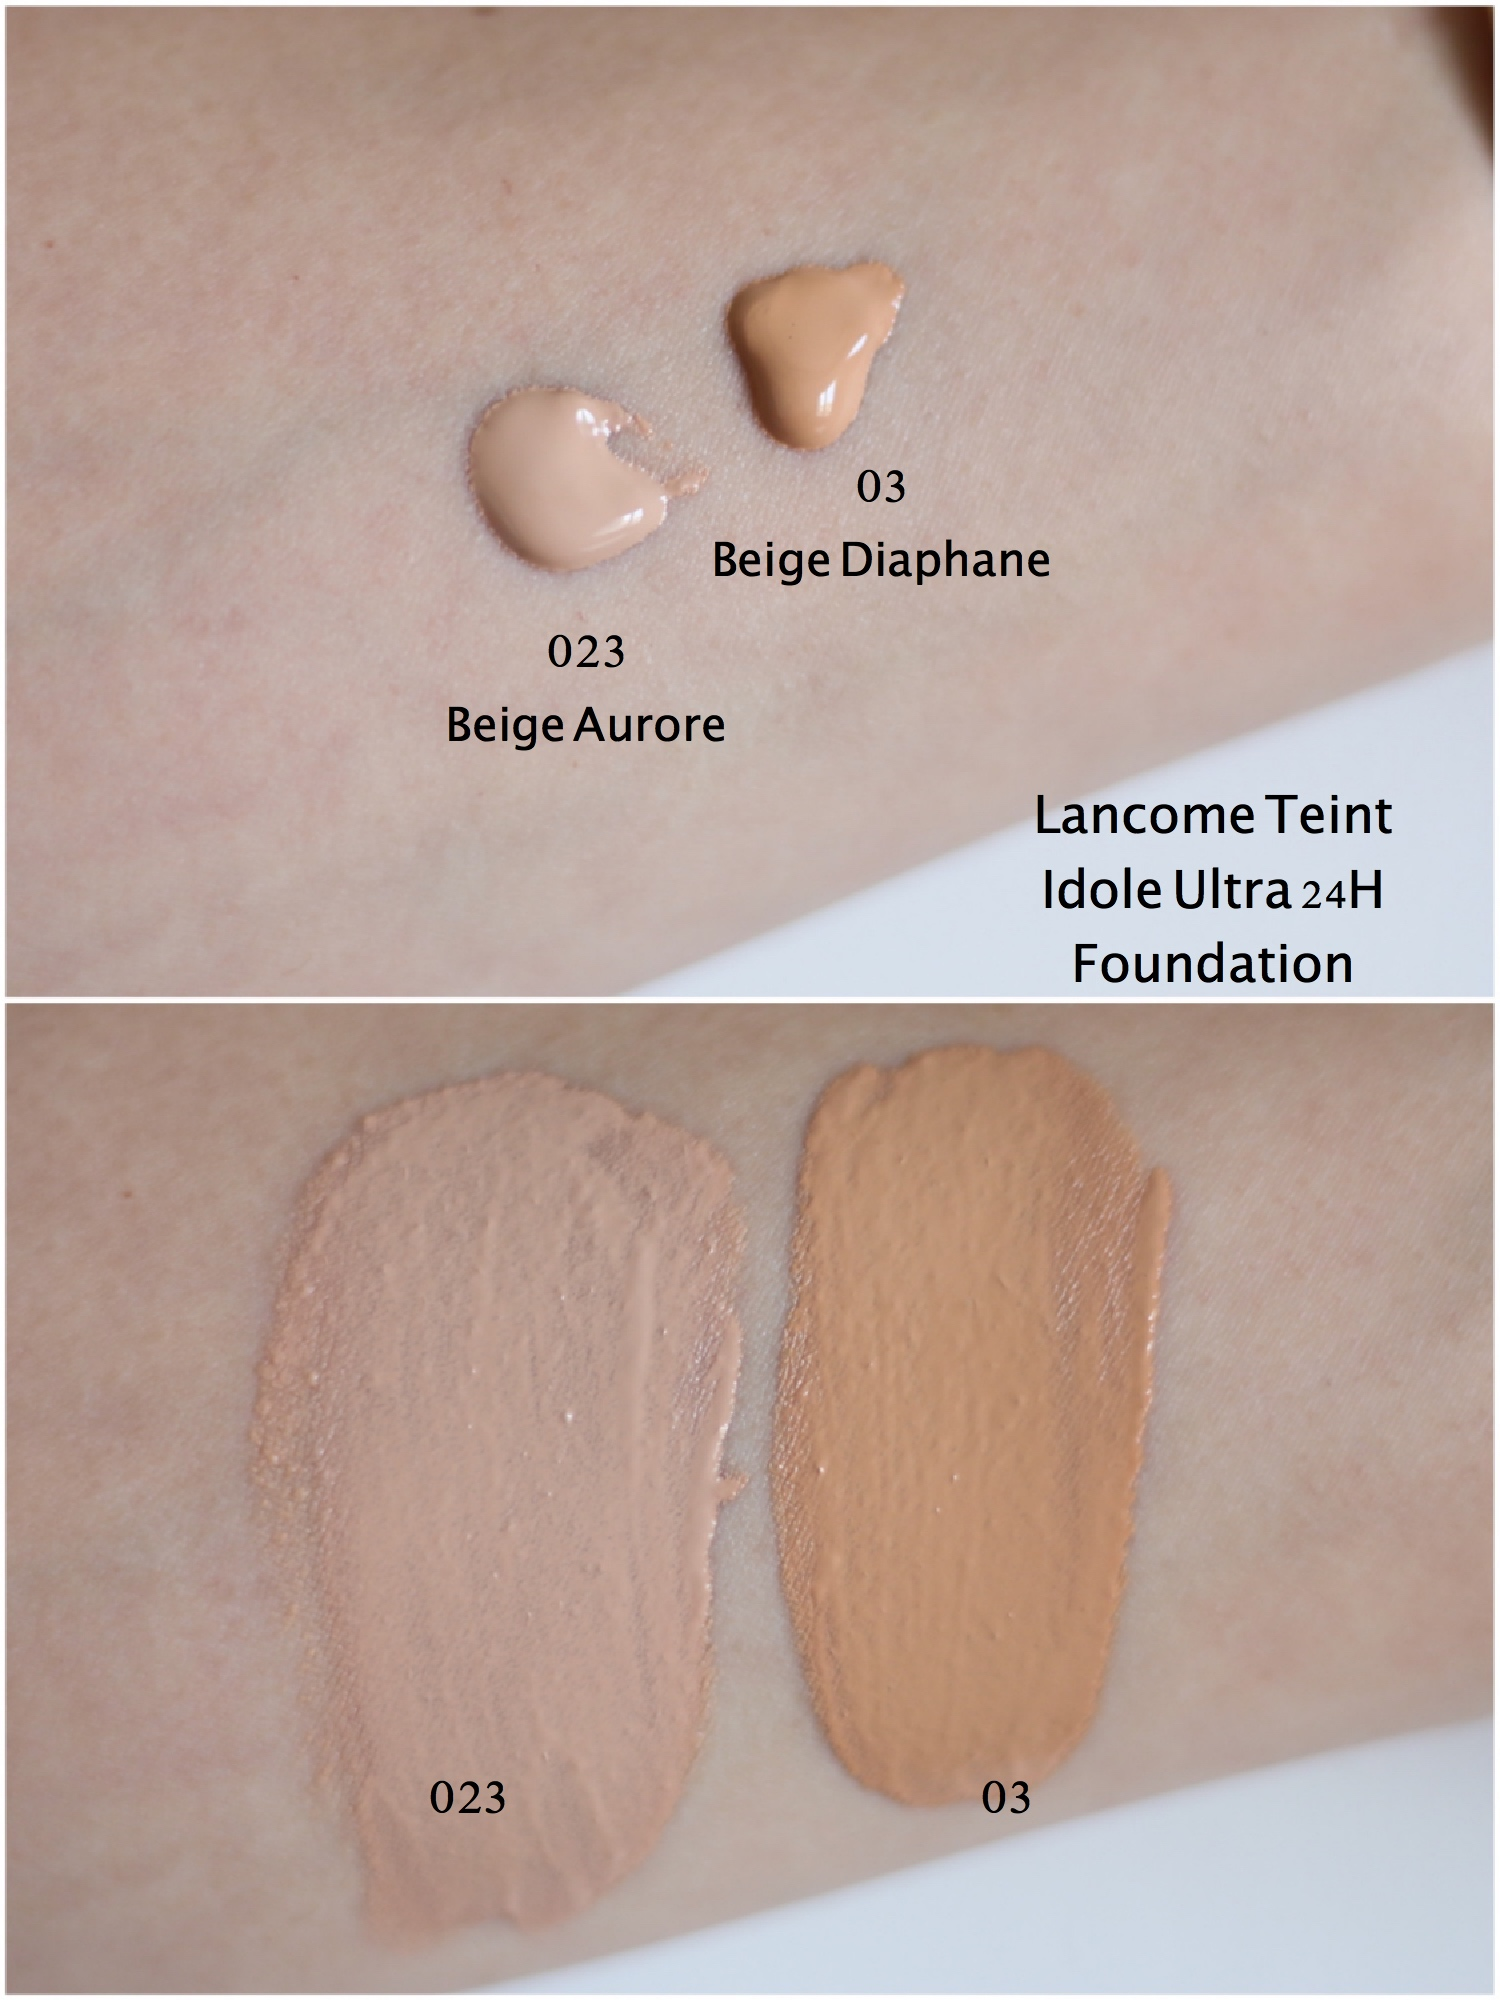 Lancome-Teint-Idole-Ultra-24H-023-and-03-Swatches.jpg